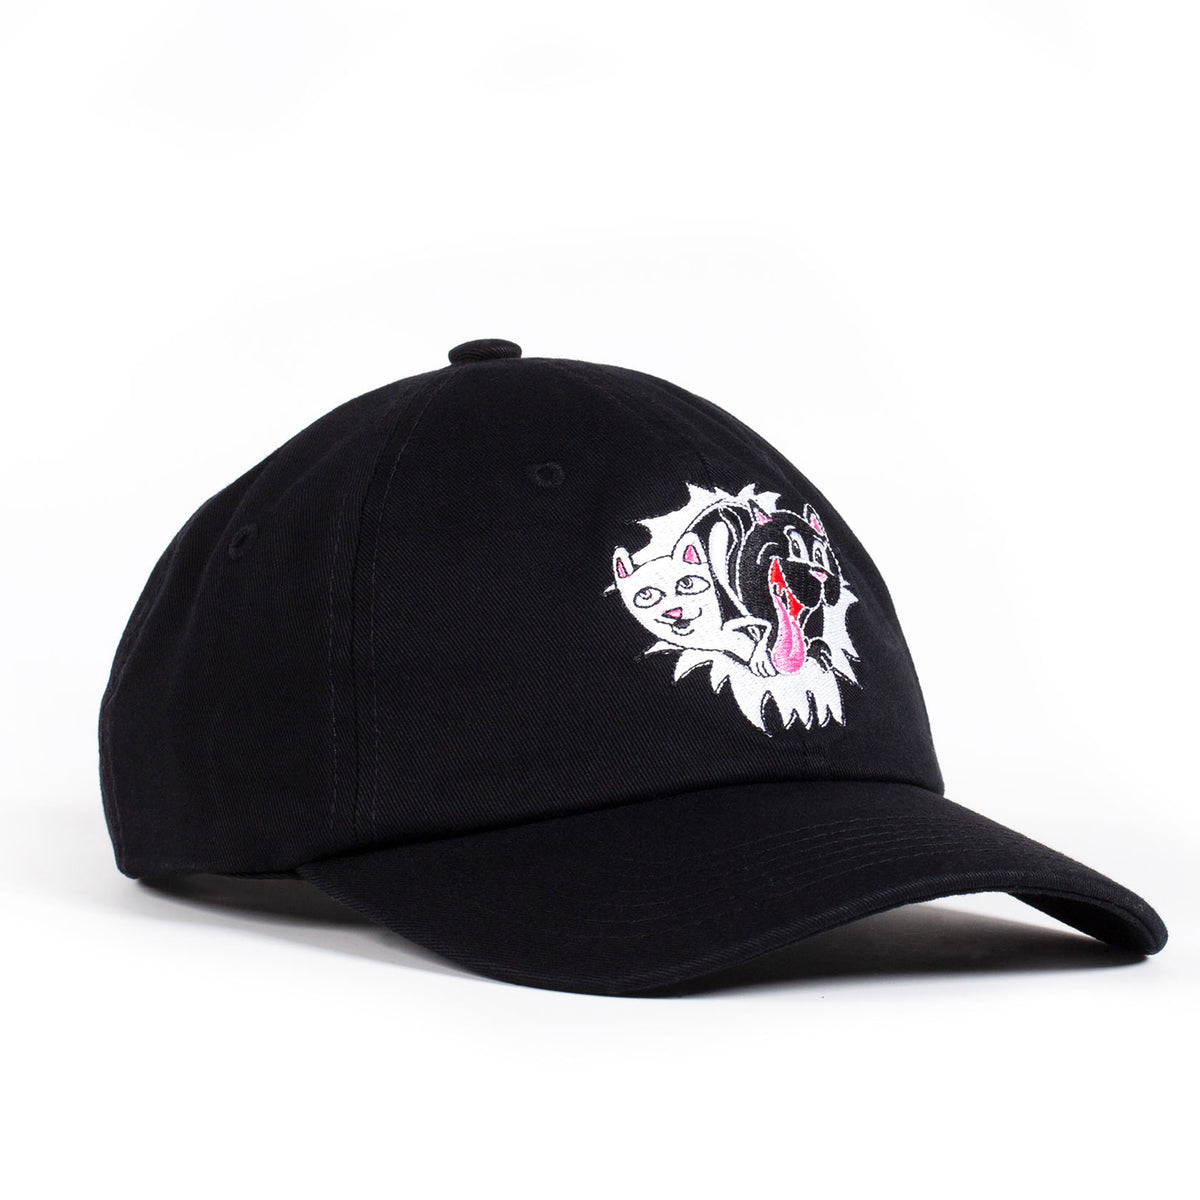 Nerm & Jerm Show Dad Hat (Black) by Ripndip